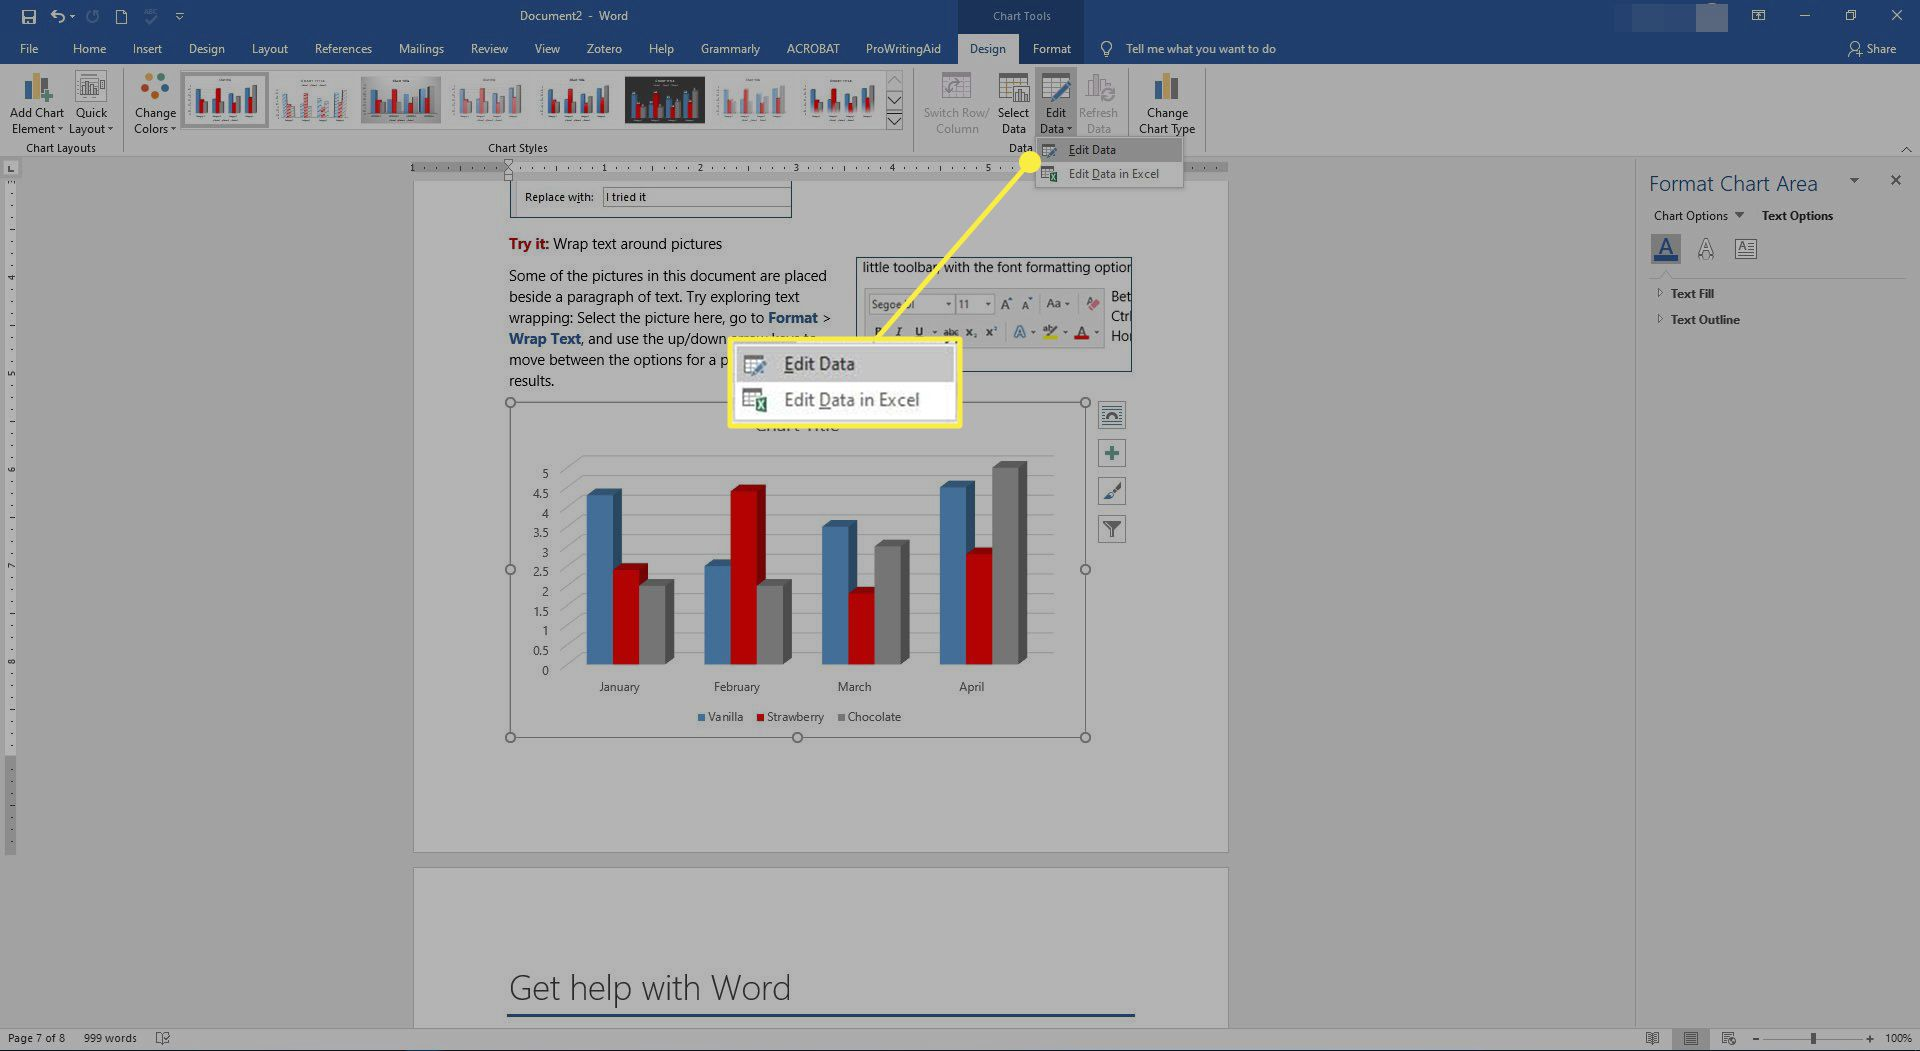 The Edit Data and Edit Data in Excel options